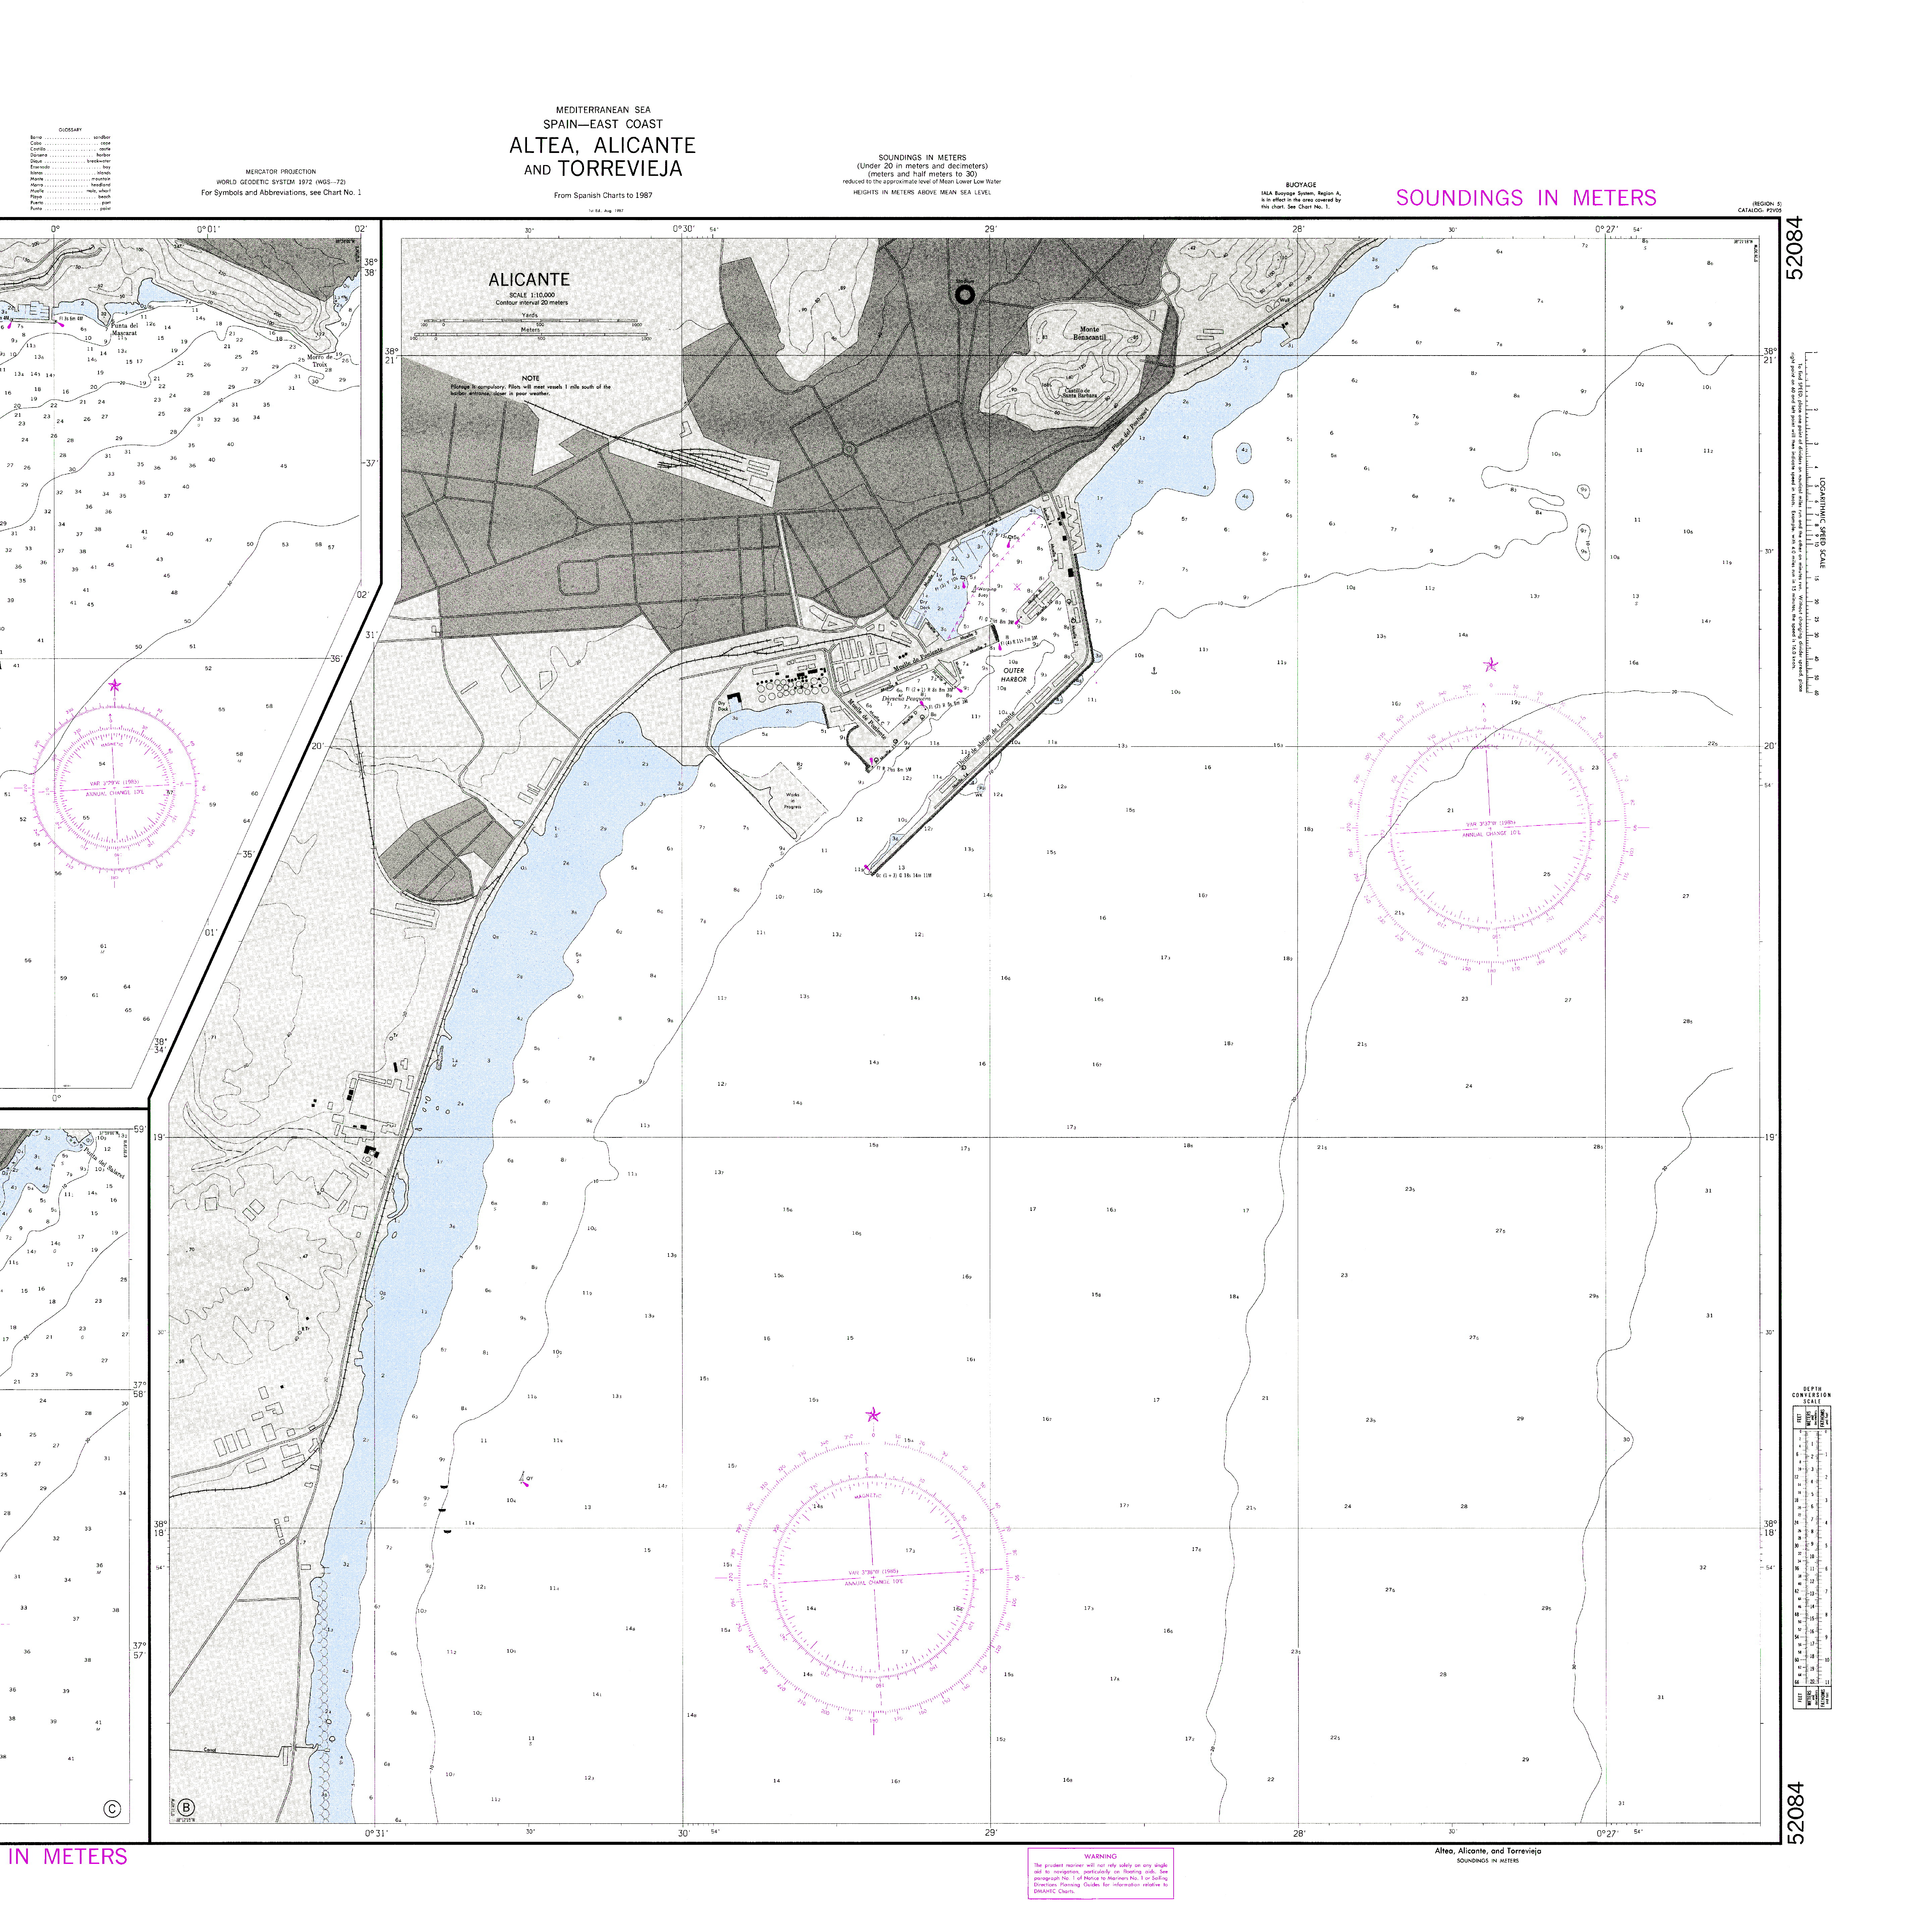 Port of Alicante nautical chart